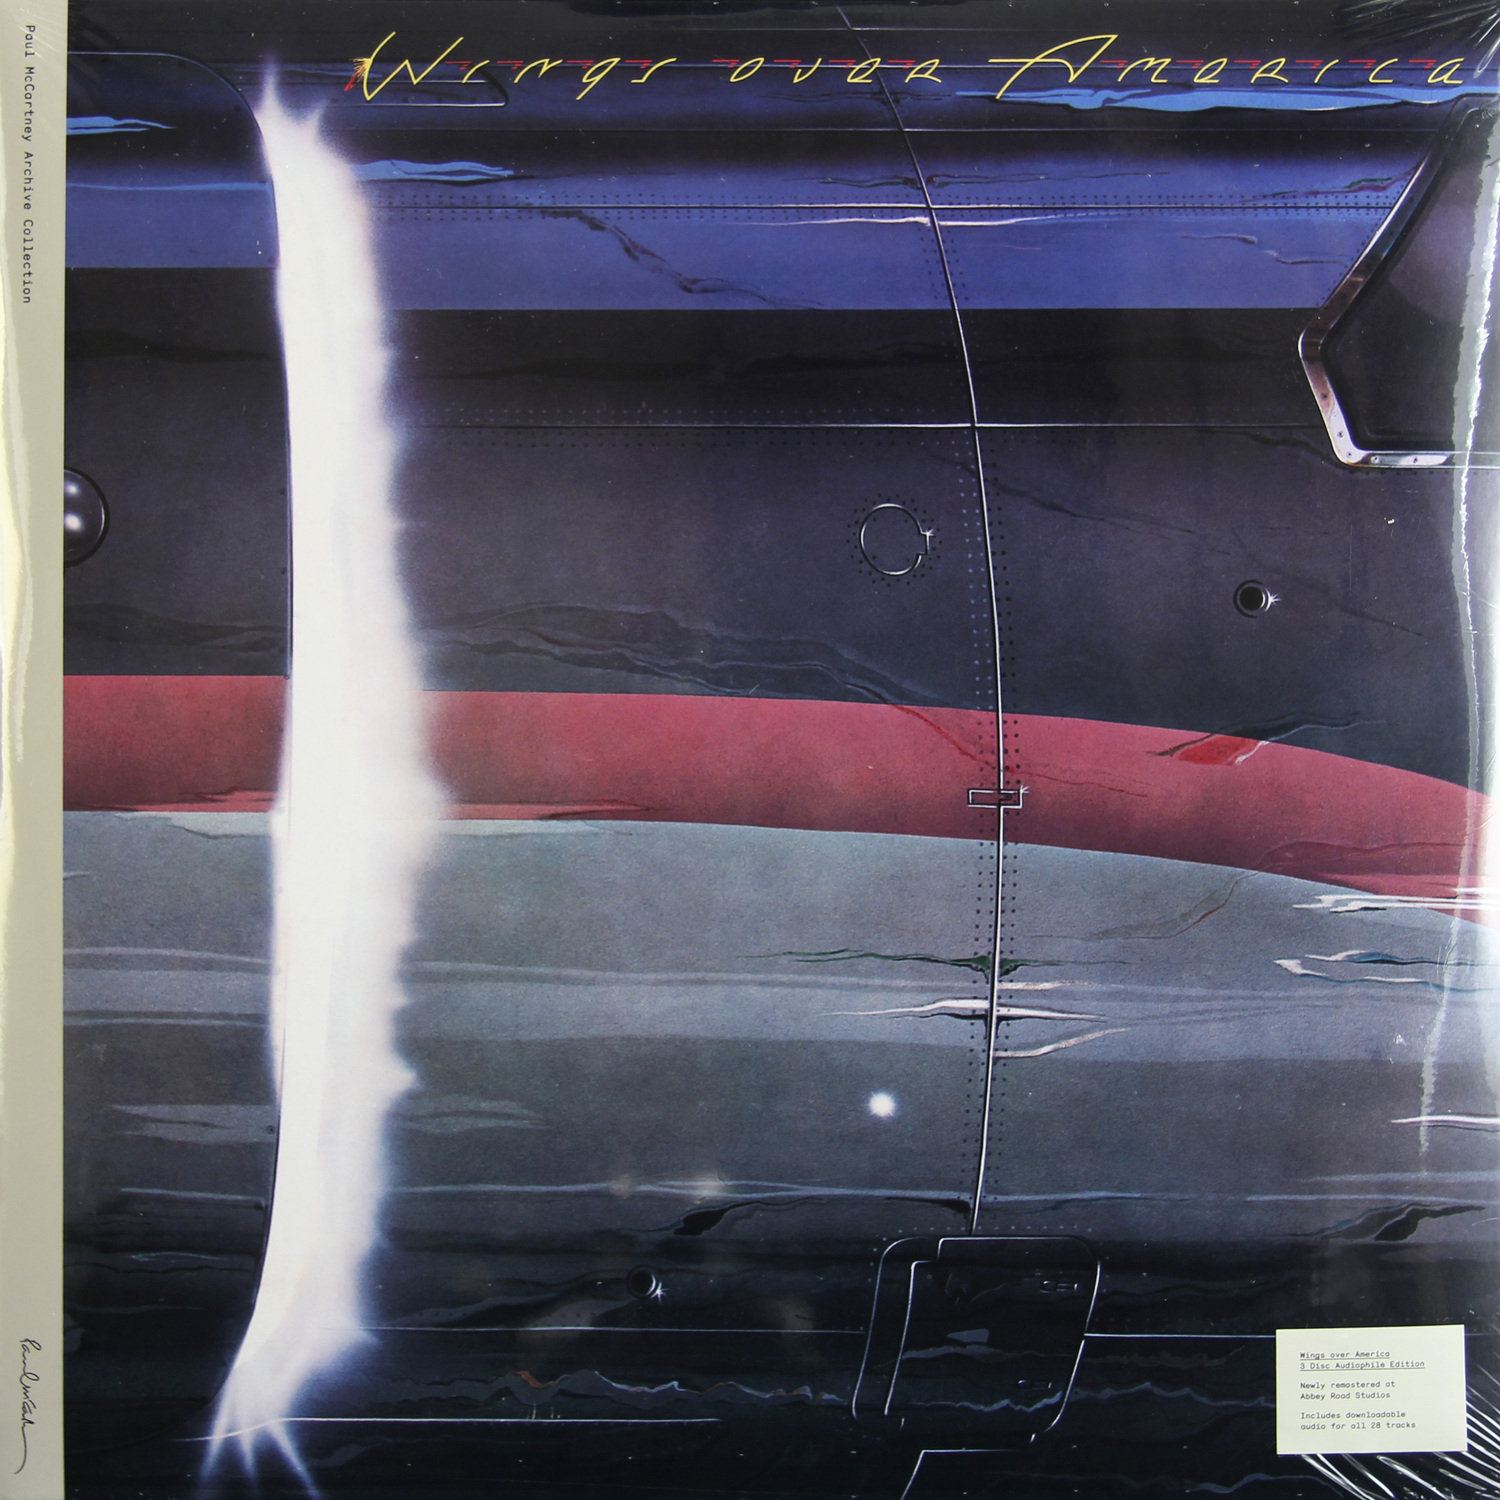 PAUL MCCARTNEY PAUL MCCARTNEY - WINGS OVER AMERICA (3 LP, 180 GR) цена 2016